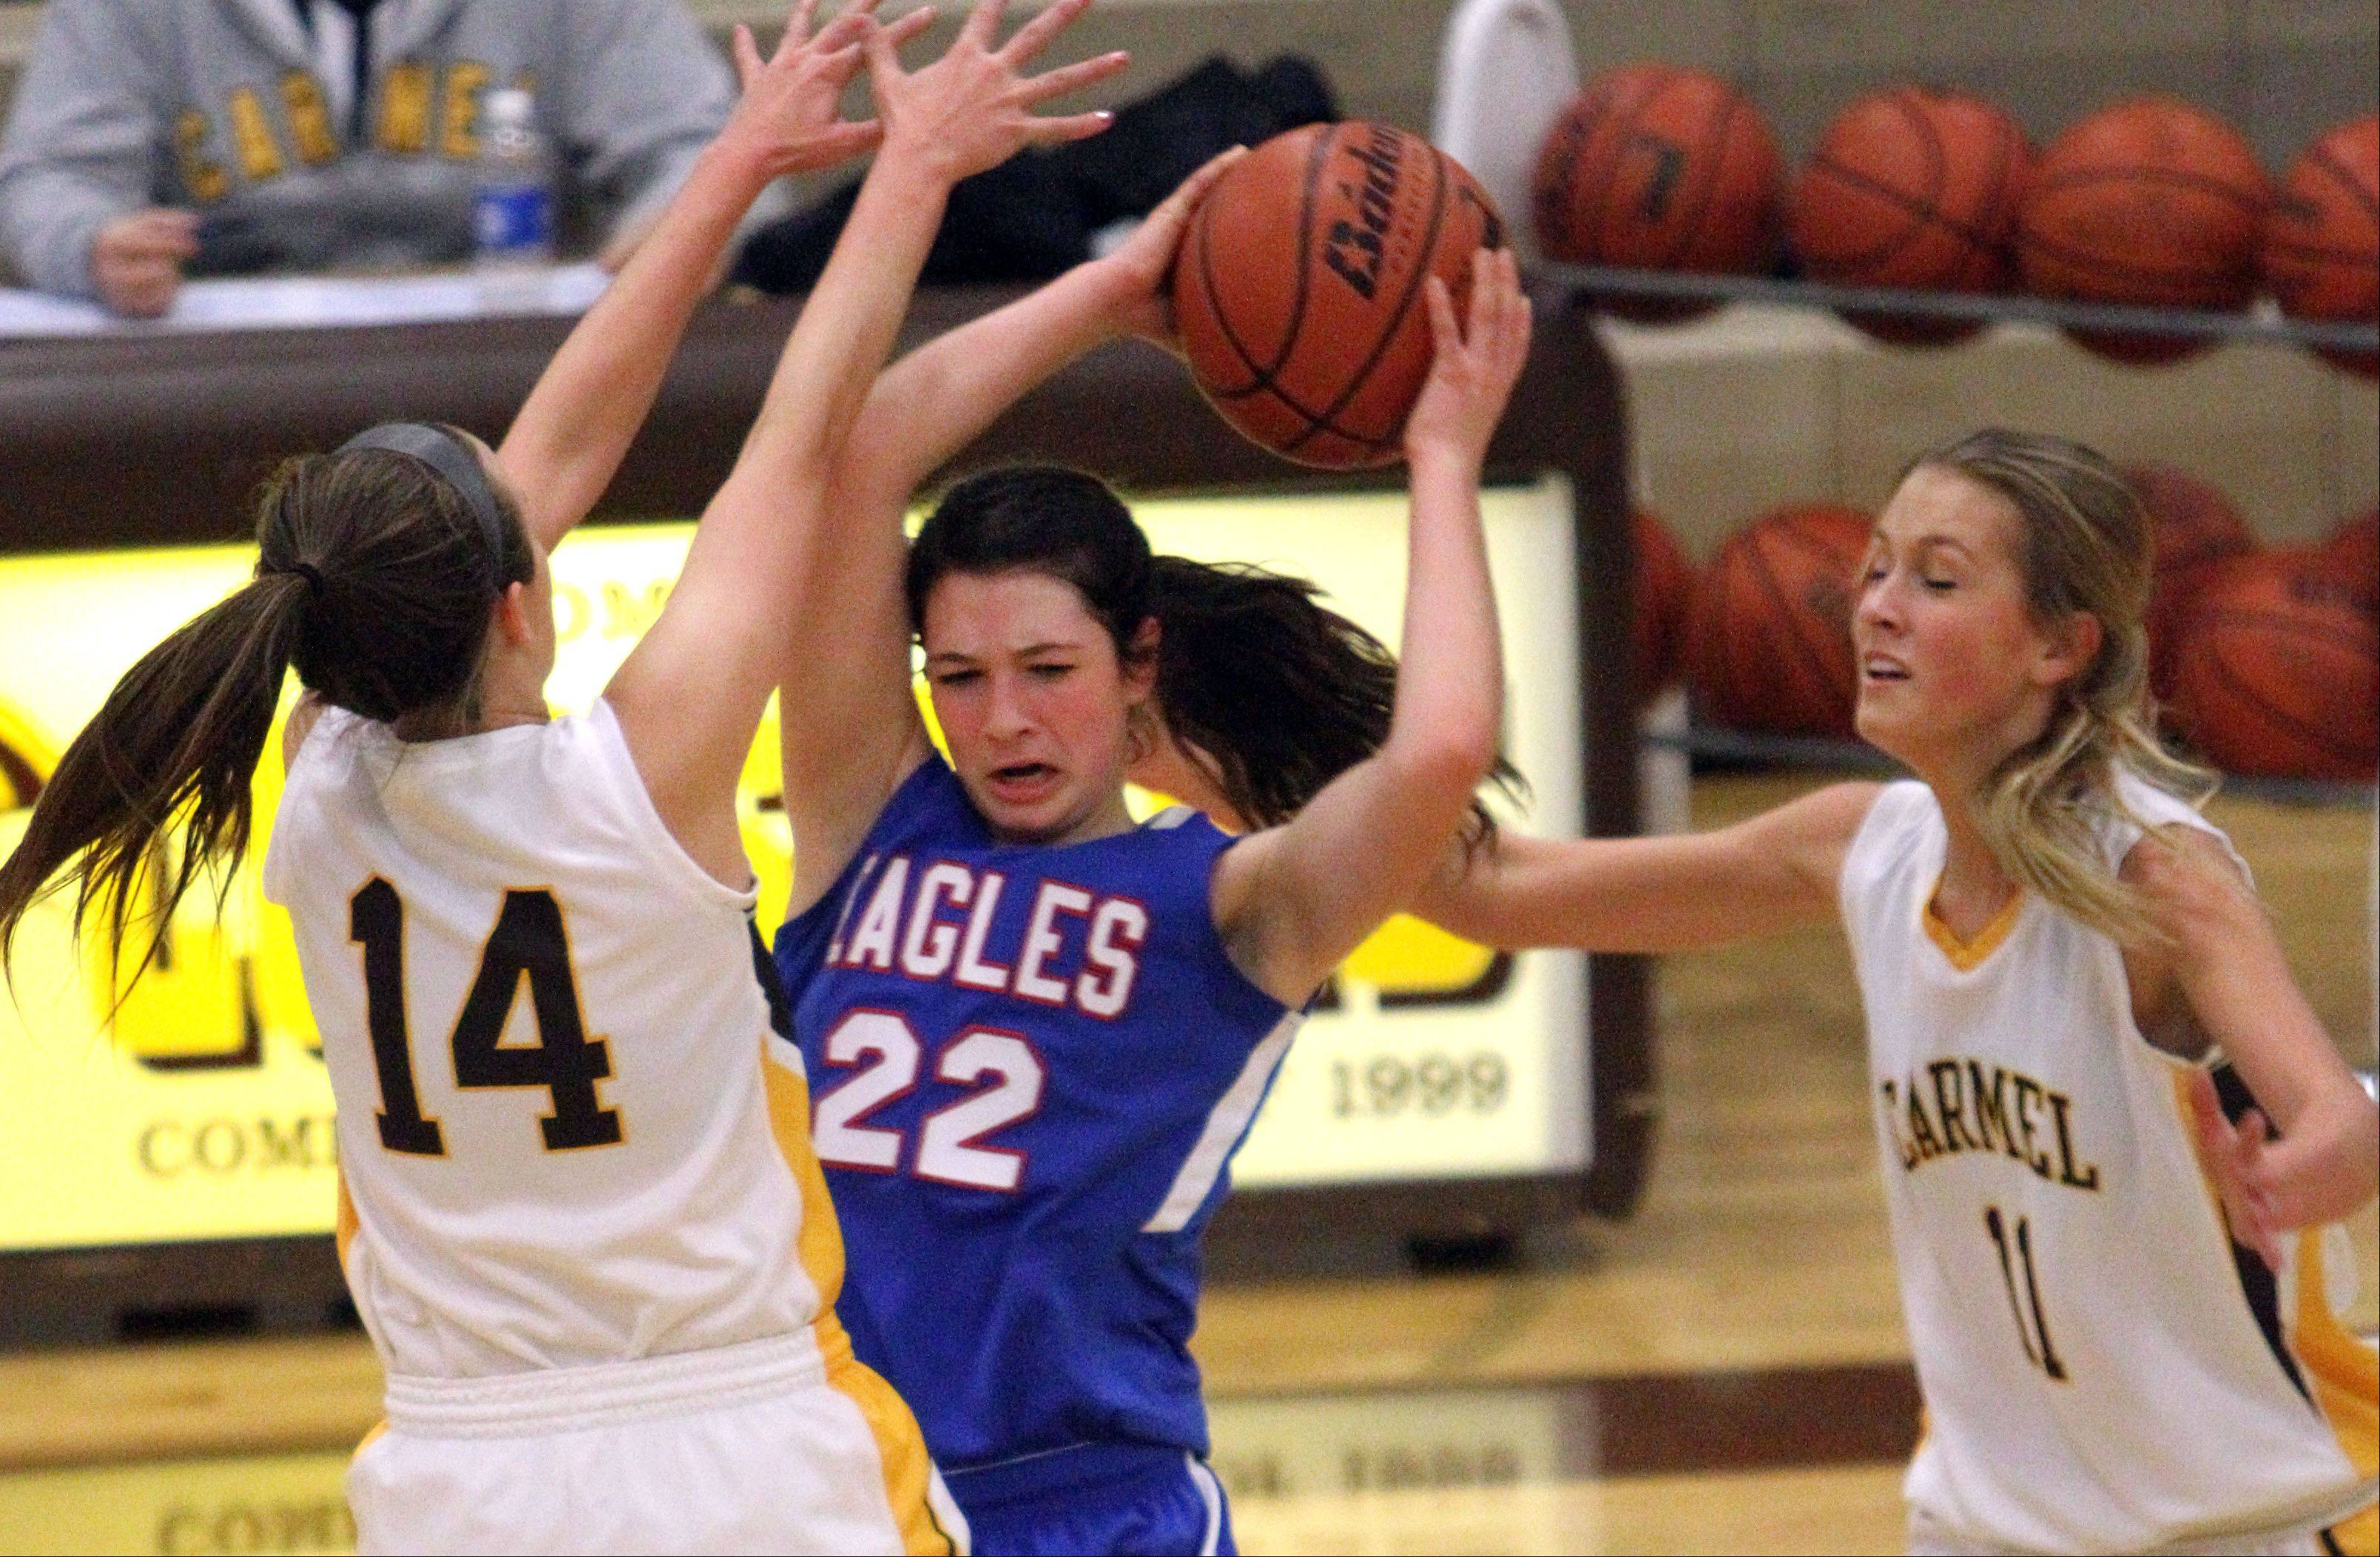 Lakes� Ellie Haviland, middle, gets trapped by Carmel�s Cassidy Kloss, left, and Leah Lach on Monday night at Carmel Catholic.